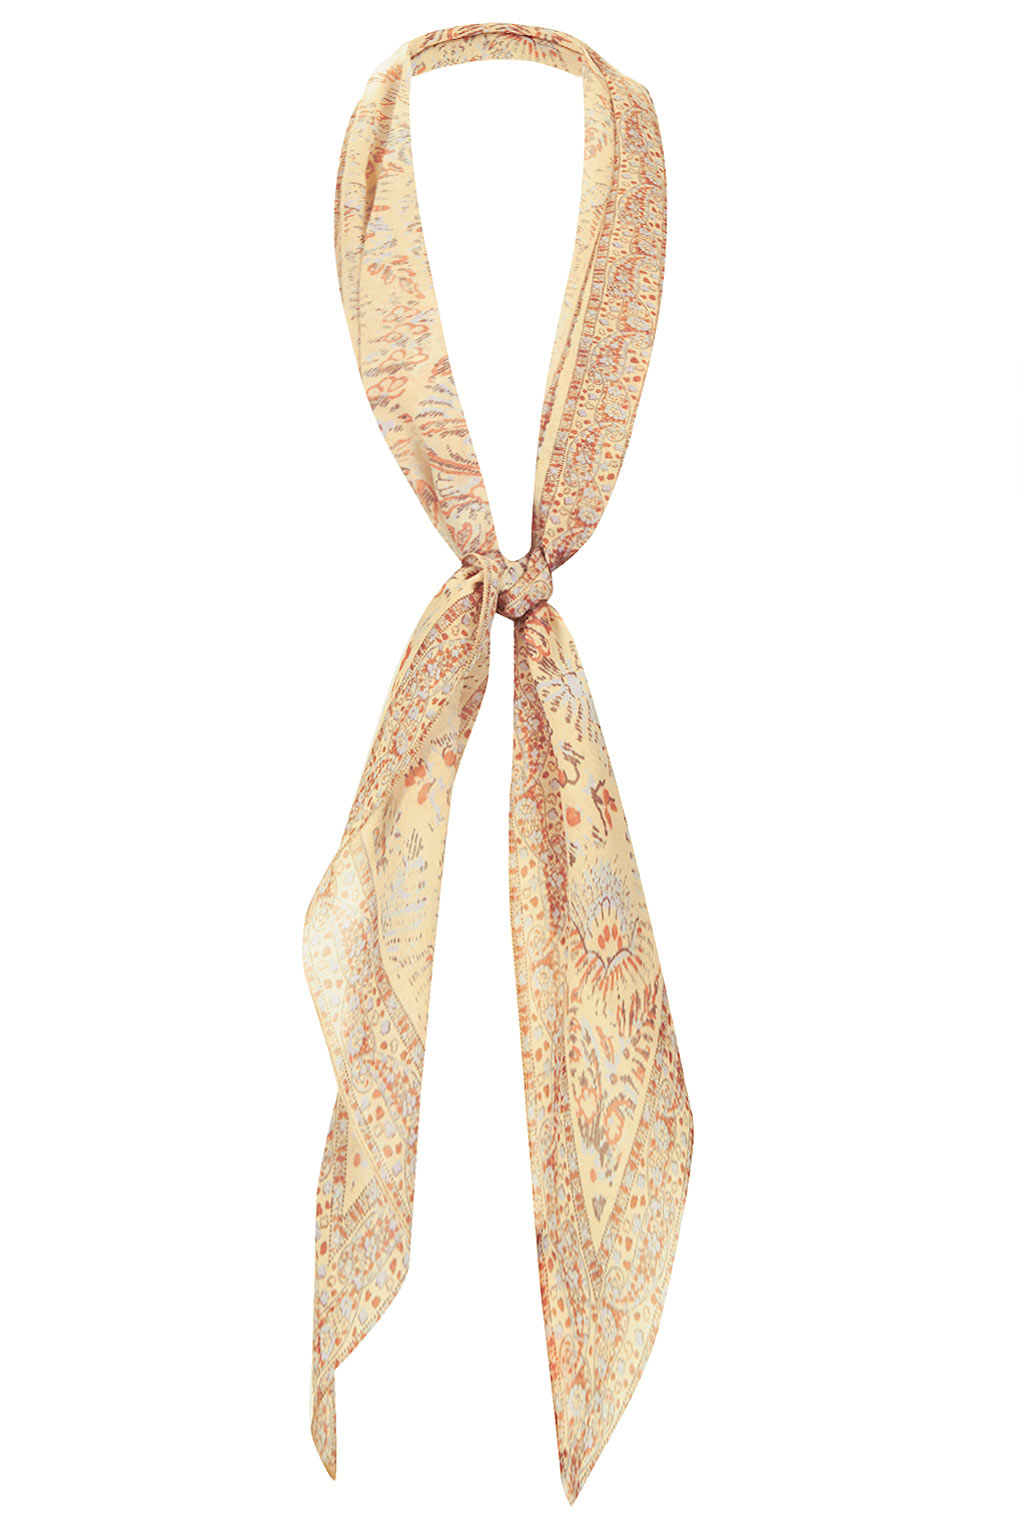 **paisley print chiffon scarf by kate moss for topshop